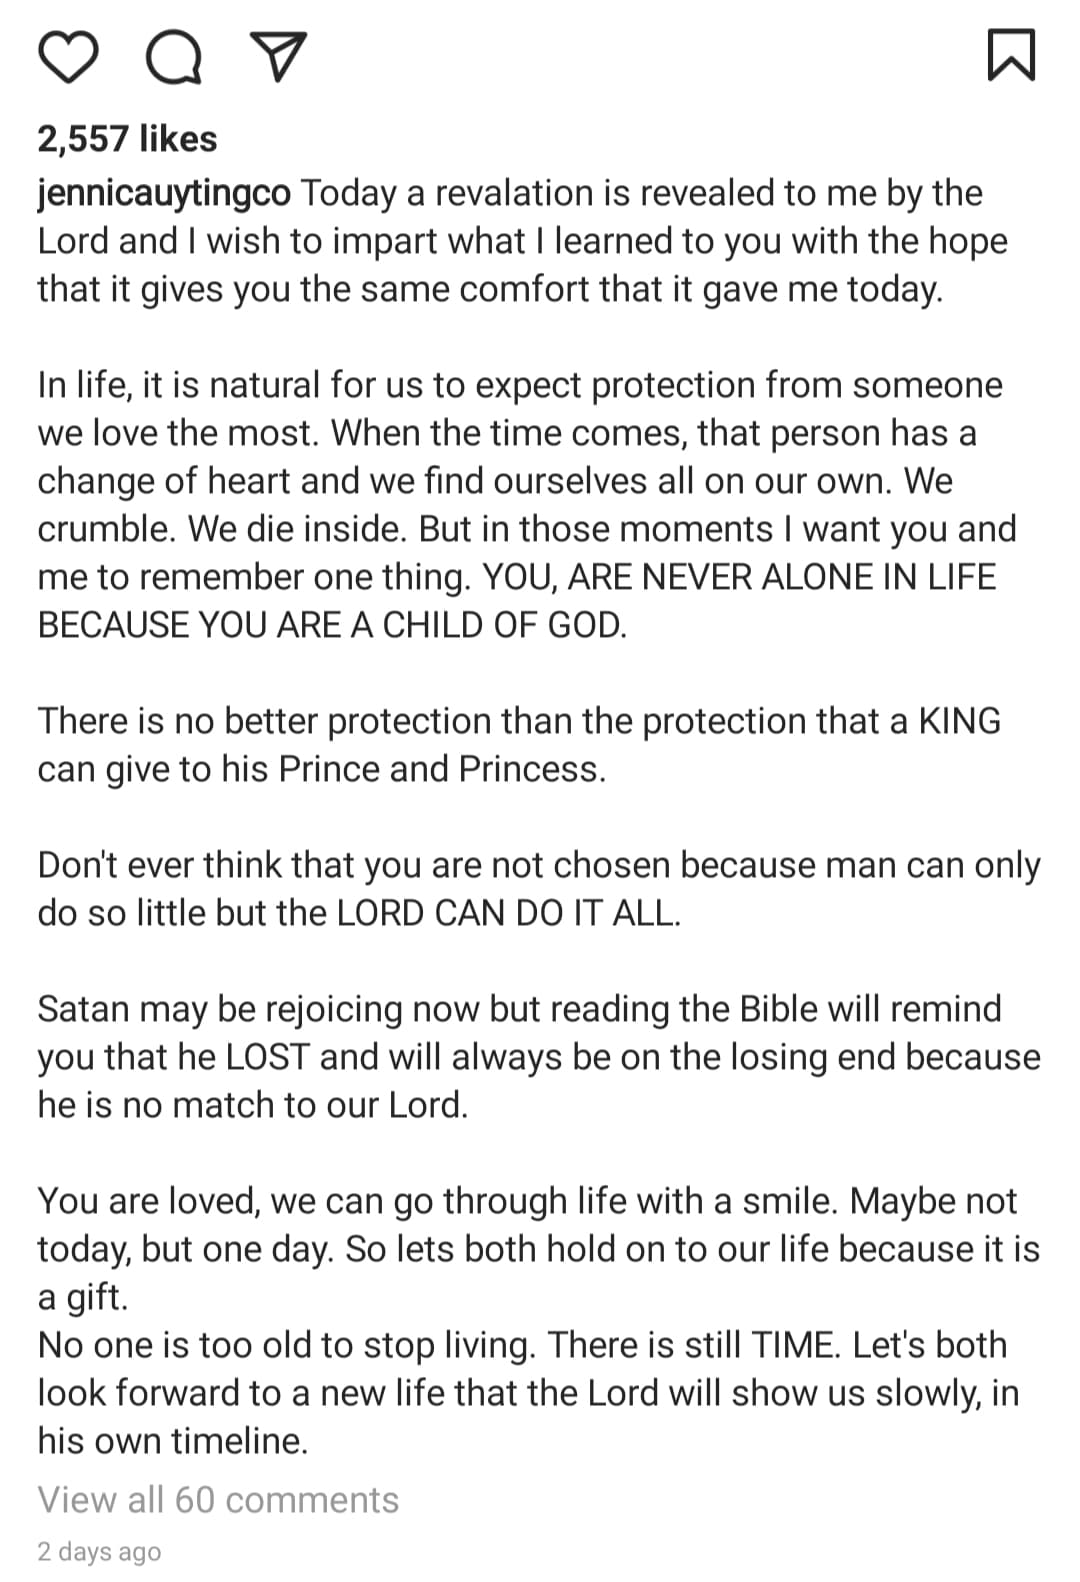 IG Caption: Jennica Garcia lengthy message about hope and time